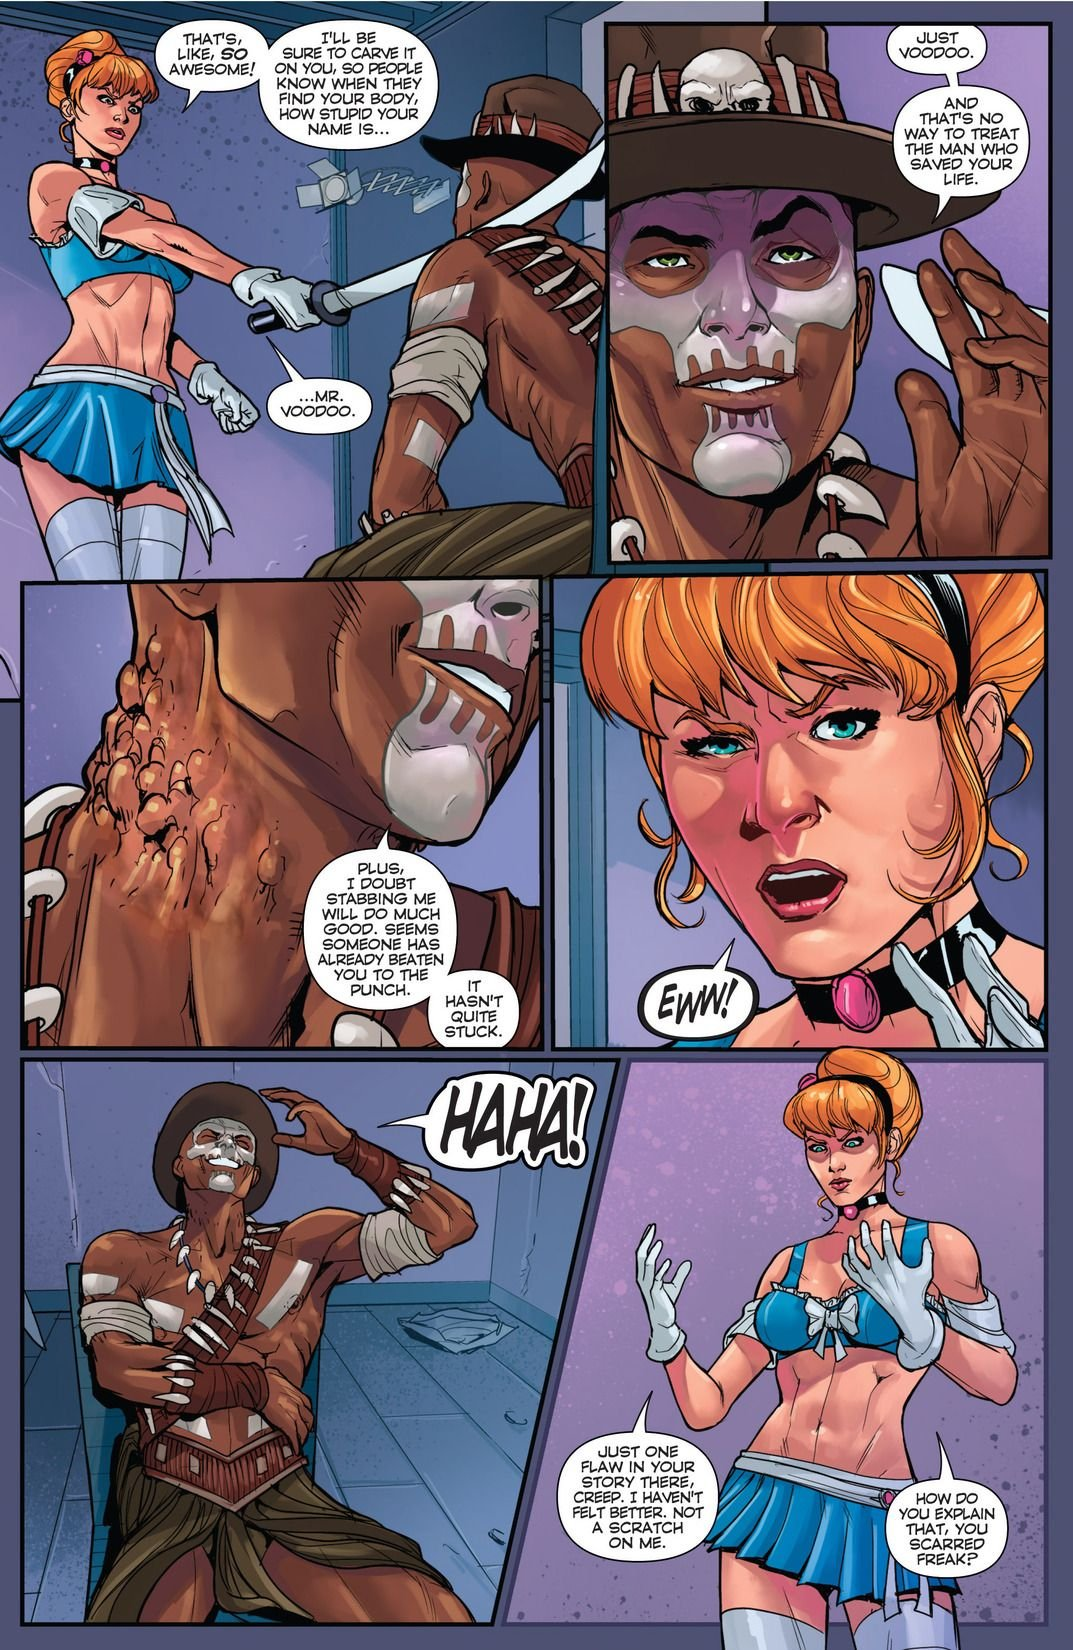 Cinderella Serial Killer Princess #1 (Comic) Review 5